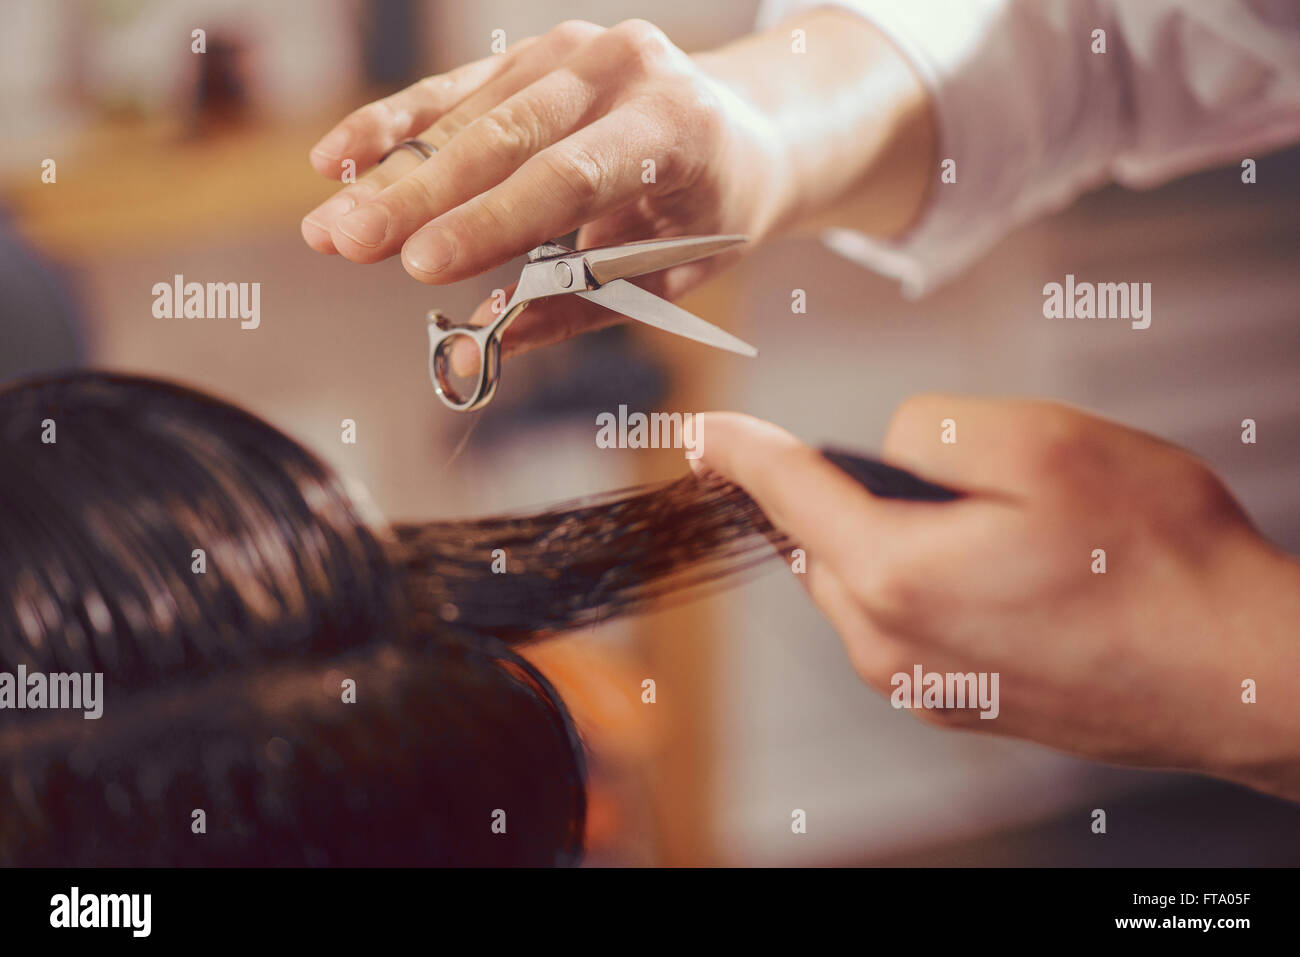 Professional barber cutting hair of his client - Stock Image